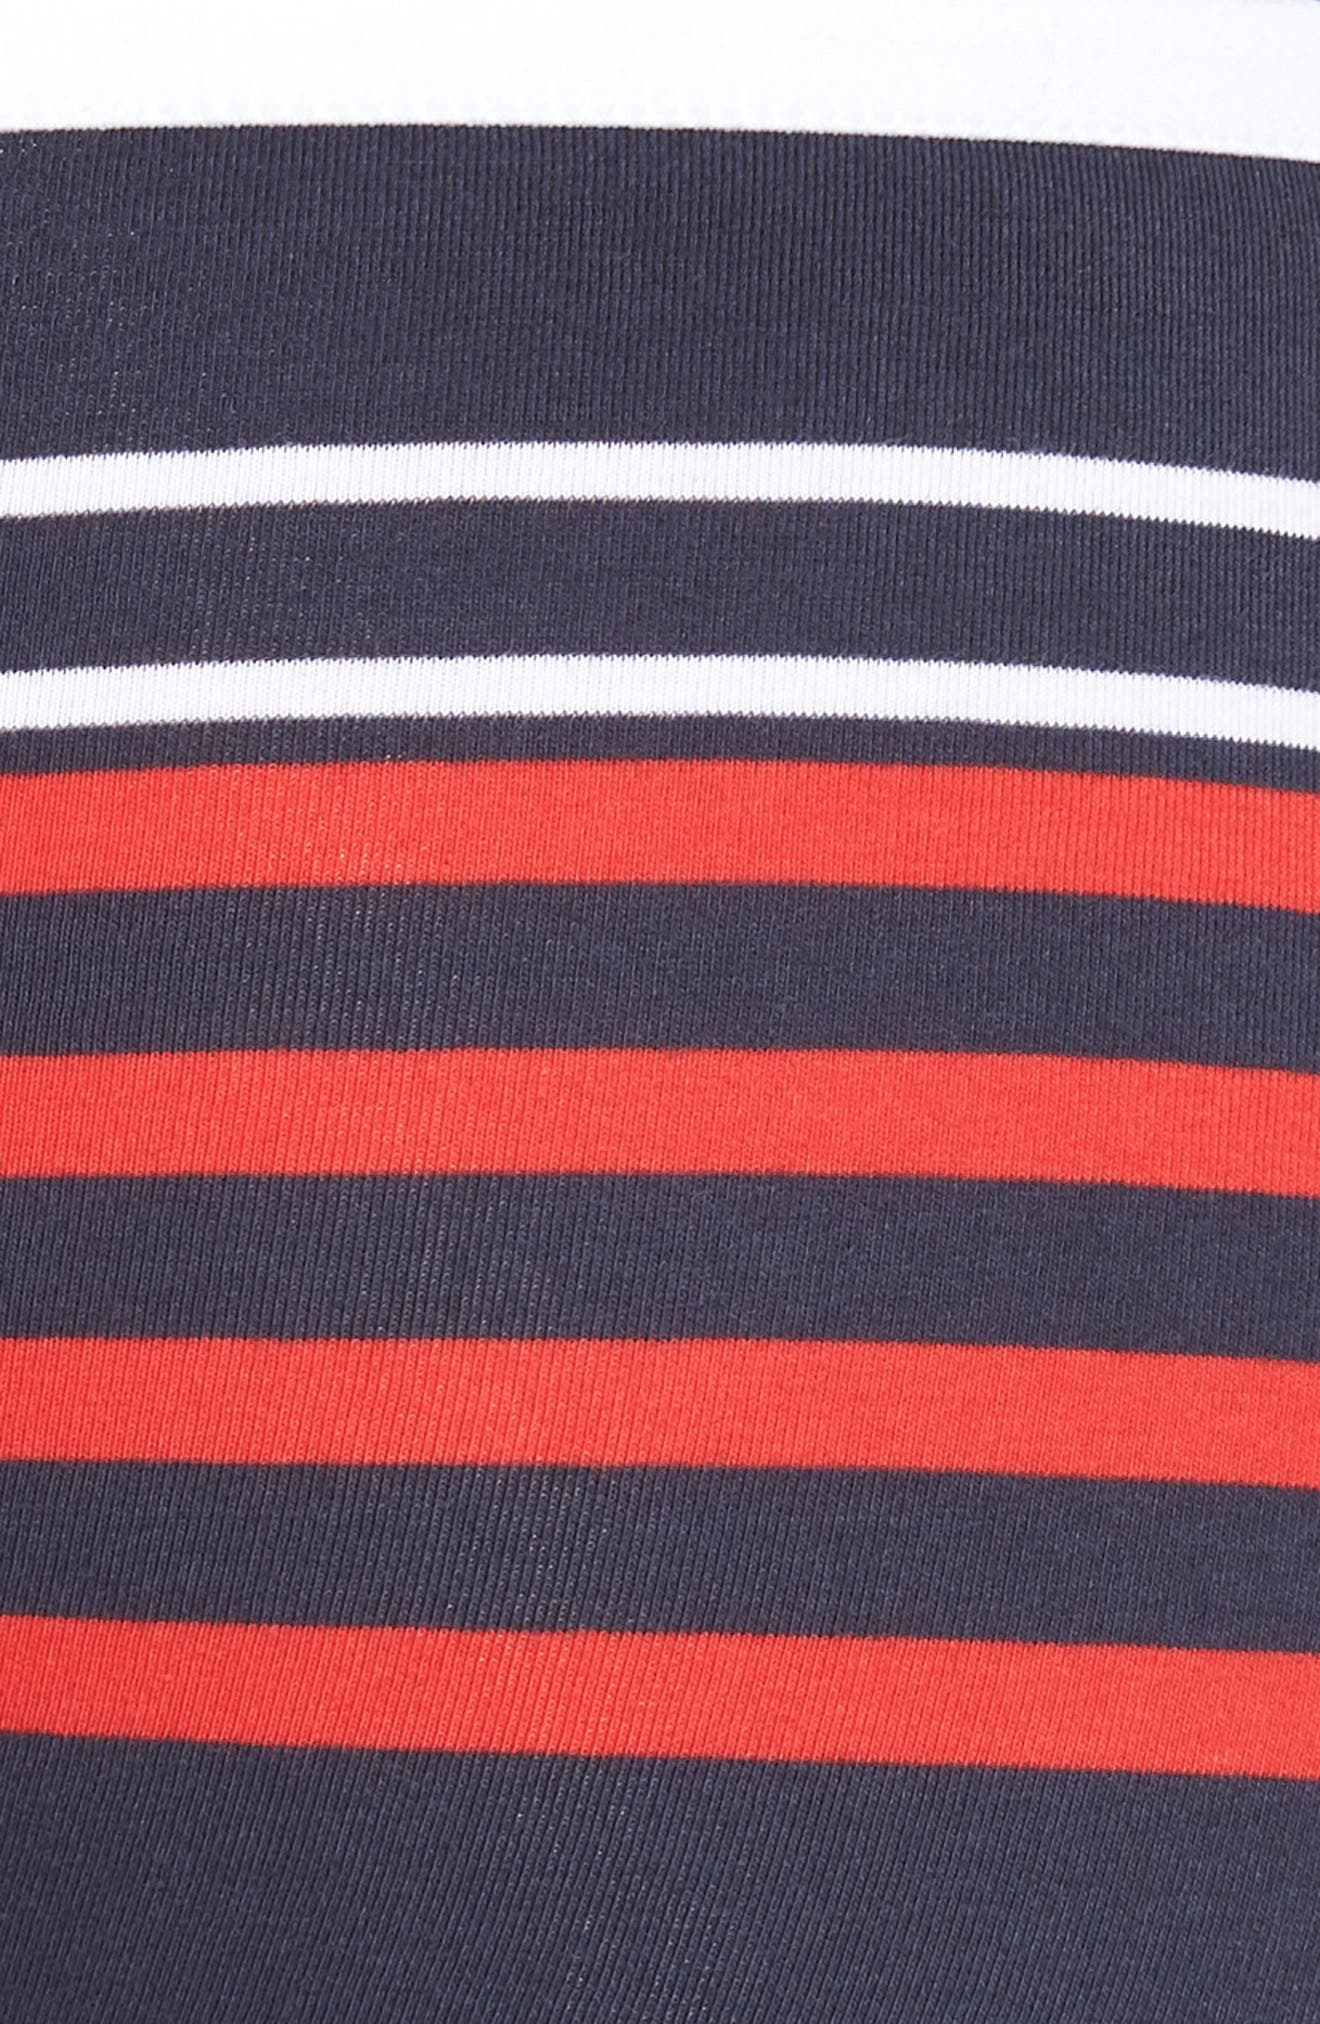 Stripe Trunks,                             Alternate thumbnail 5, color,                             405